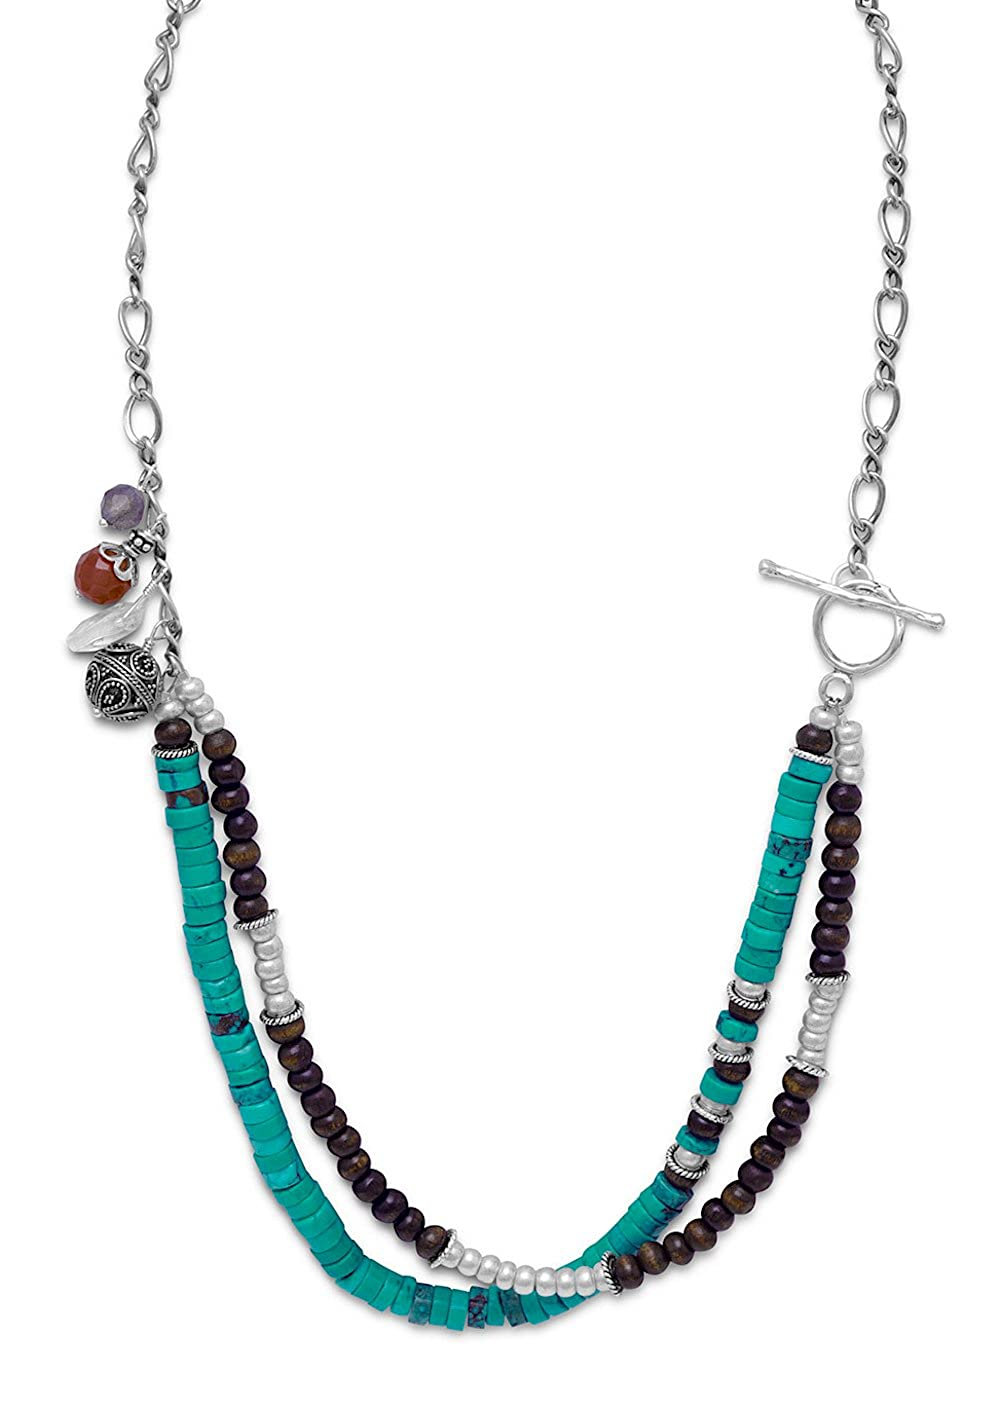 21 inch Sterling Toggle Necklace 6.5mm Turquoise//Labradorite//Carnelian//Quartz//Glass//Wood